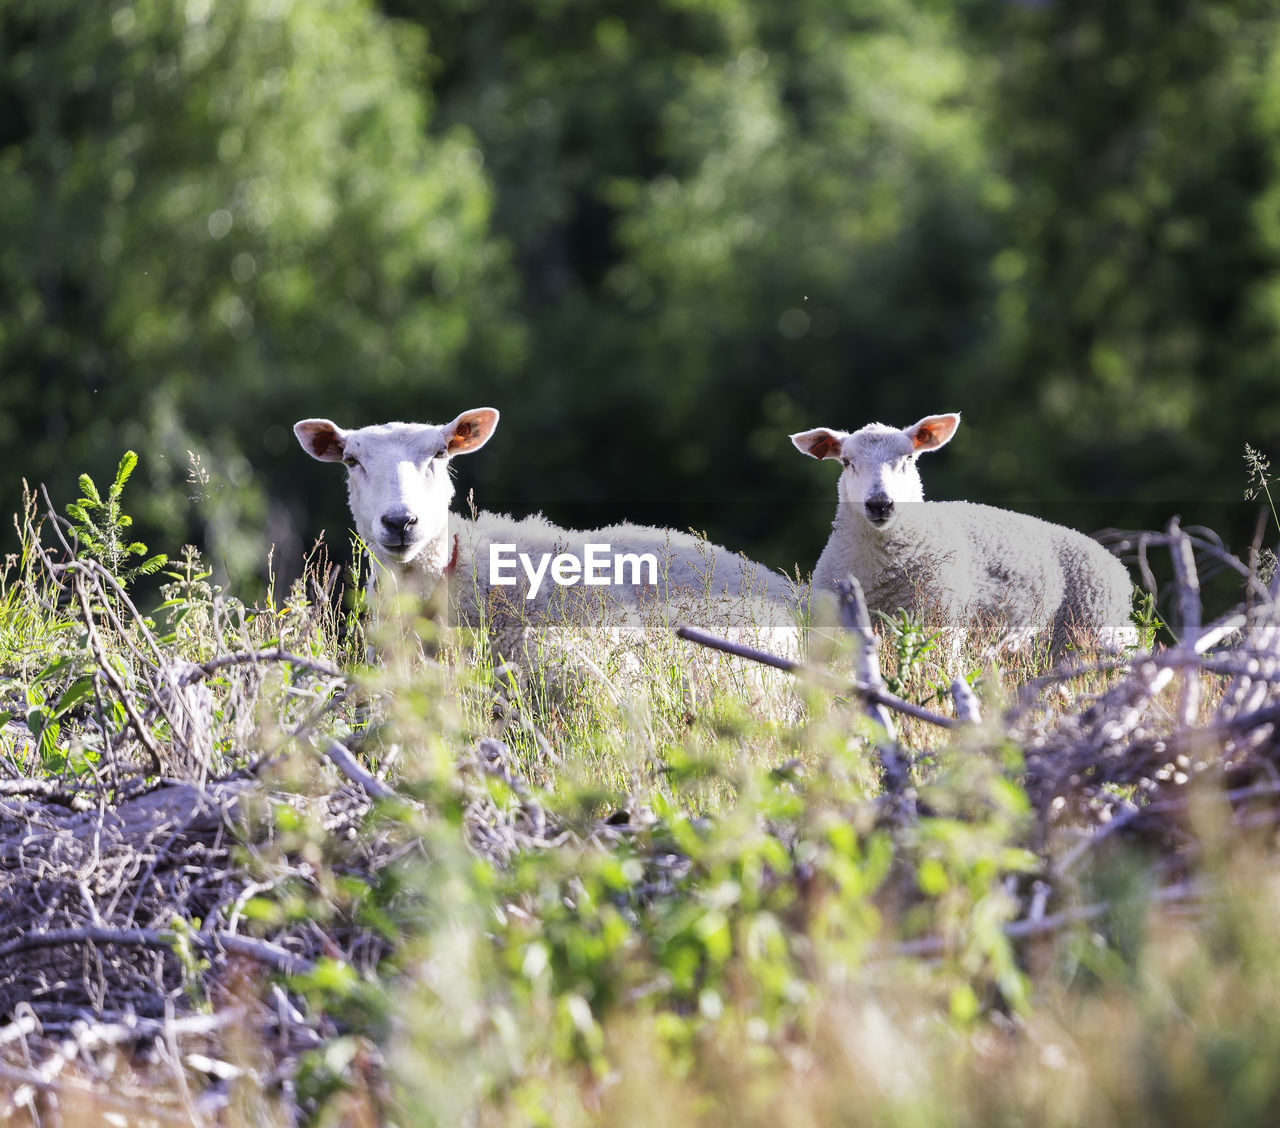 mammal, domestic animals, plant, group of animals, domestic, animal, livestock, animal themes, selective focus, land, pets, sheep, field, nature, vertebrate, no people, grass, day, growth, two animals, lamb, herbivorous, outdoors